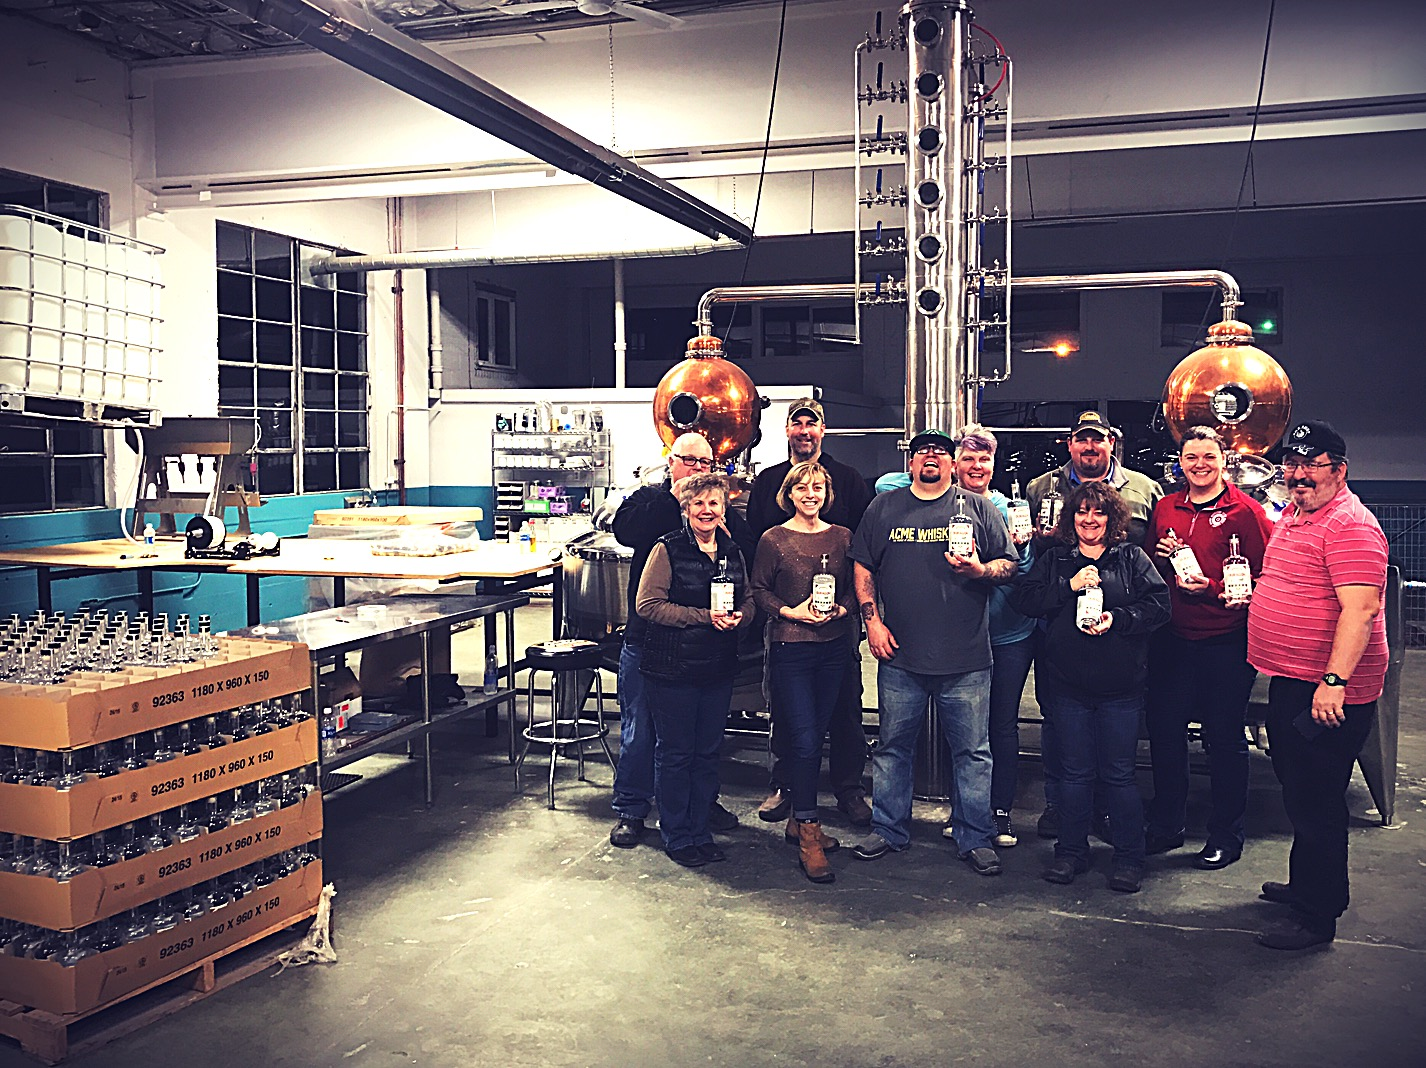 Third Batch of OUragon in bottles. Great crew!